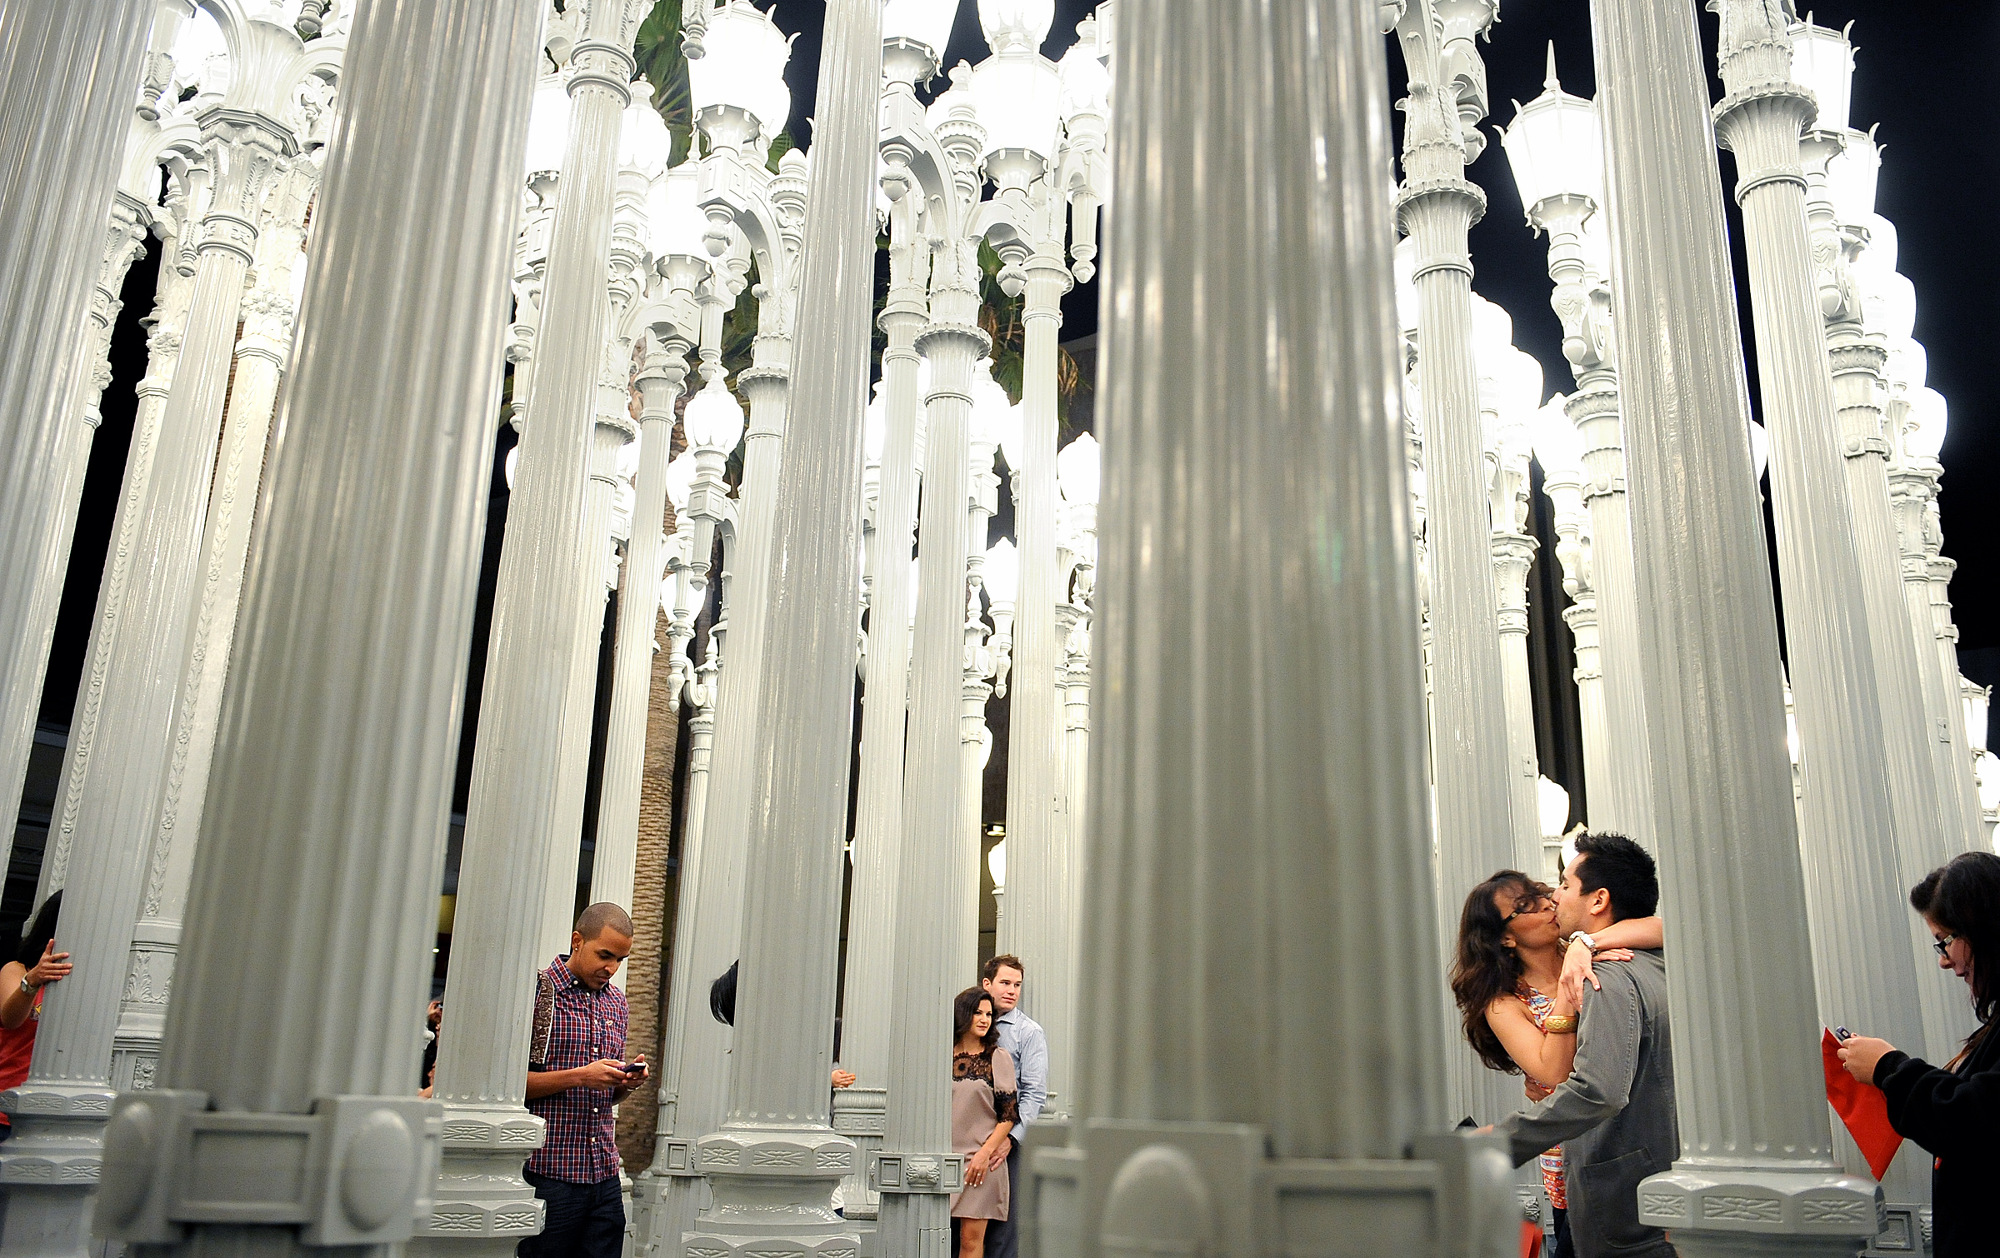 People explore the Urban Light sculpture